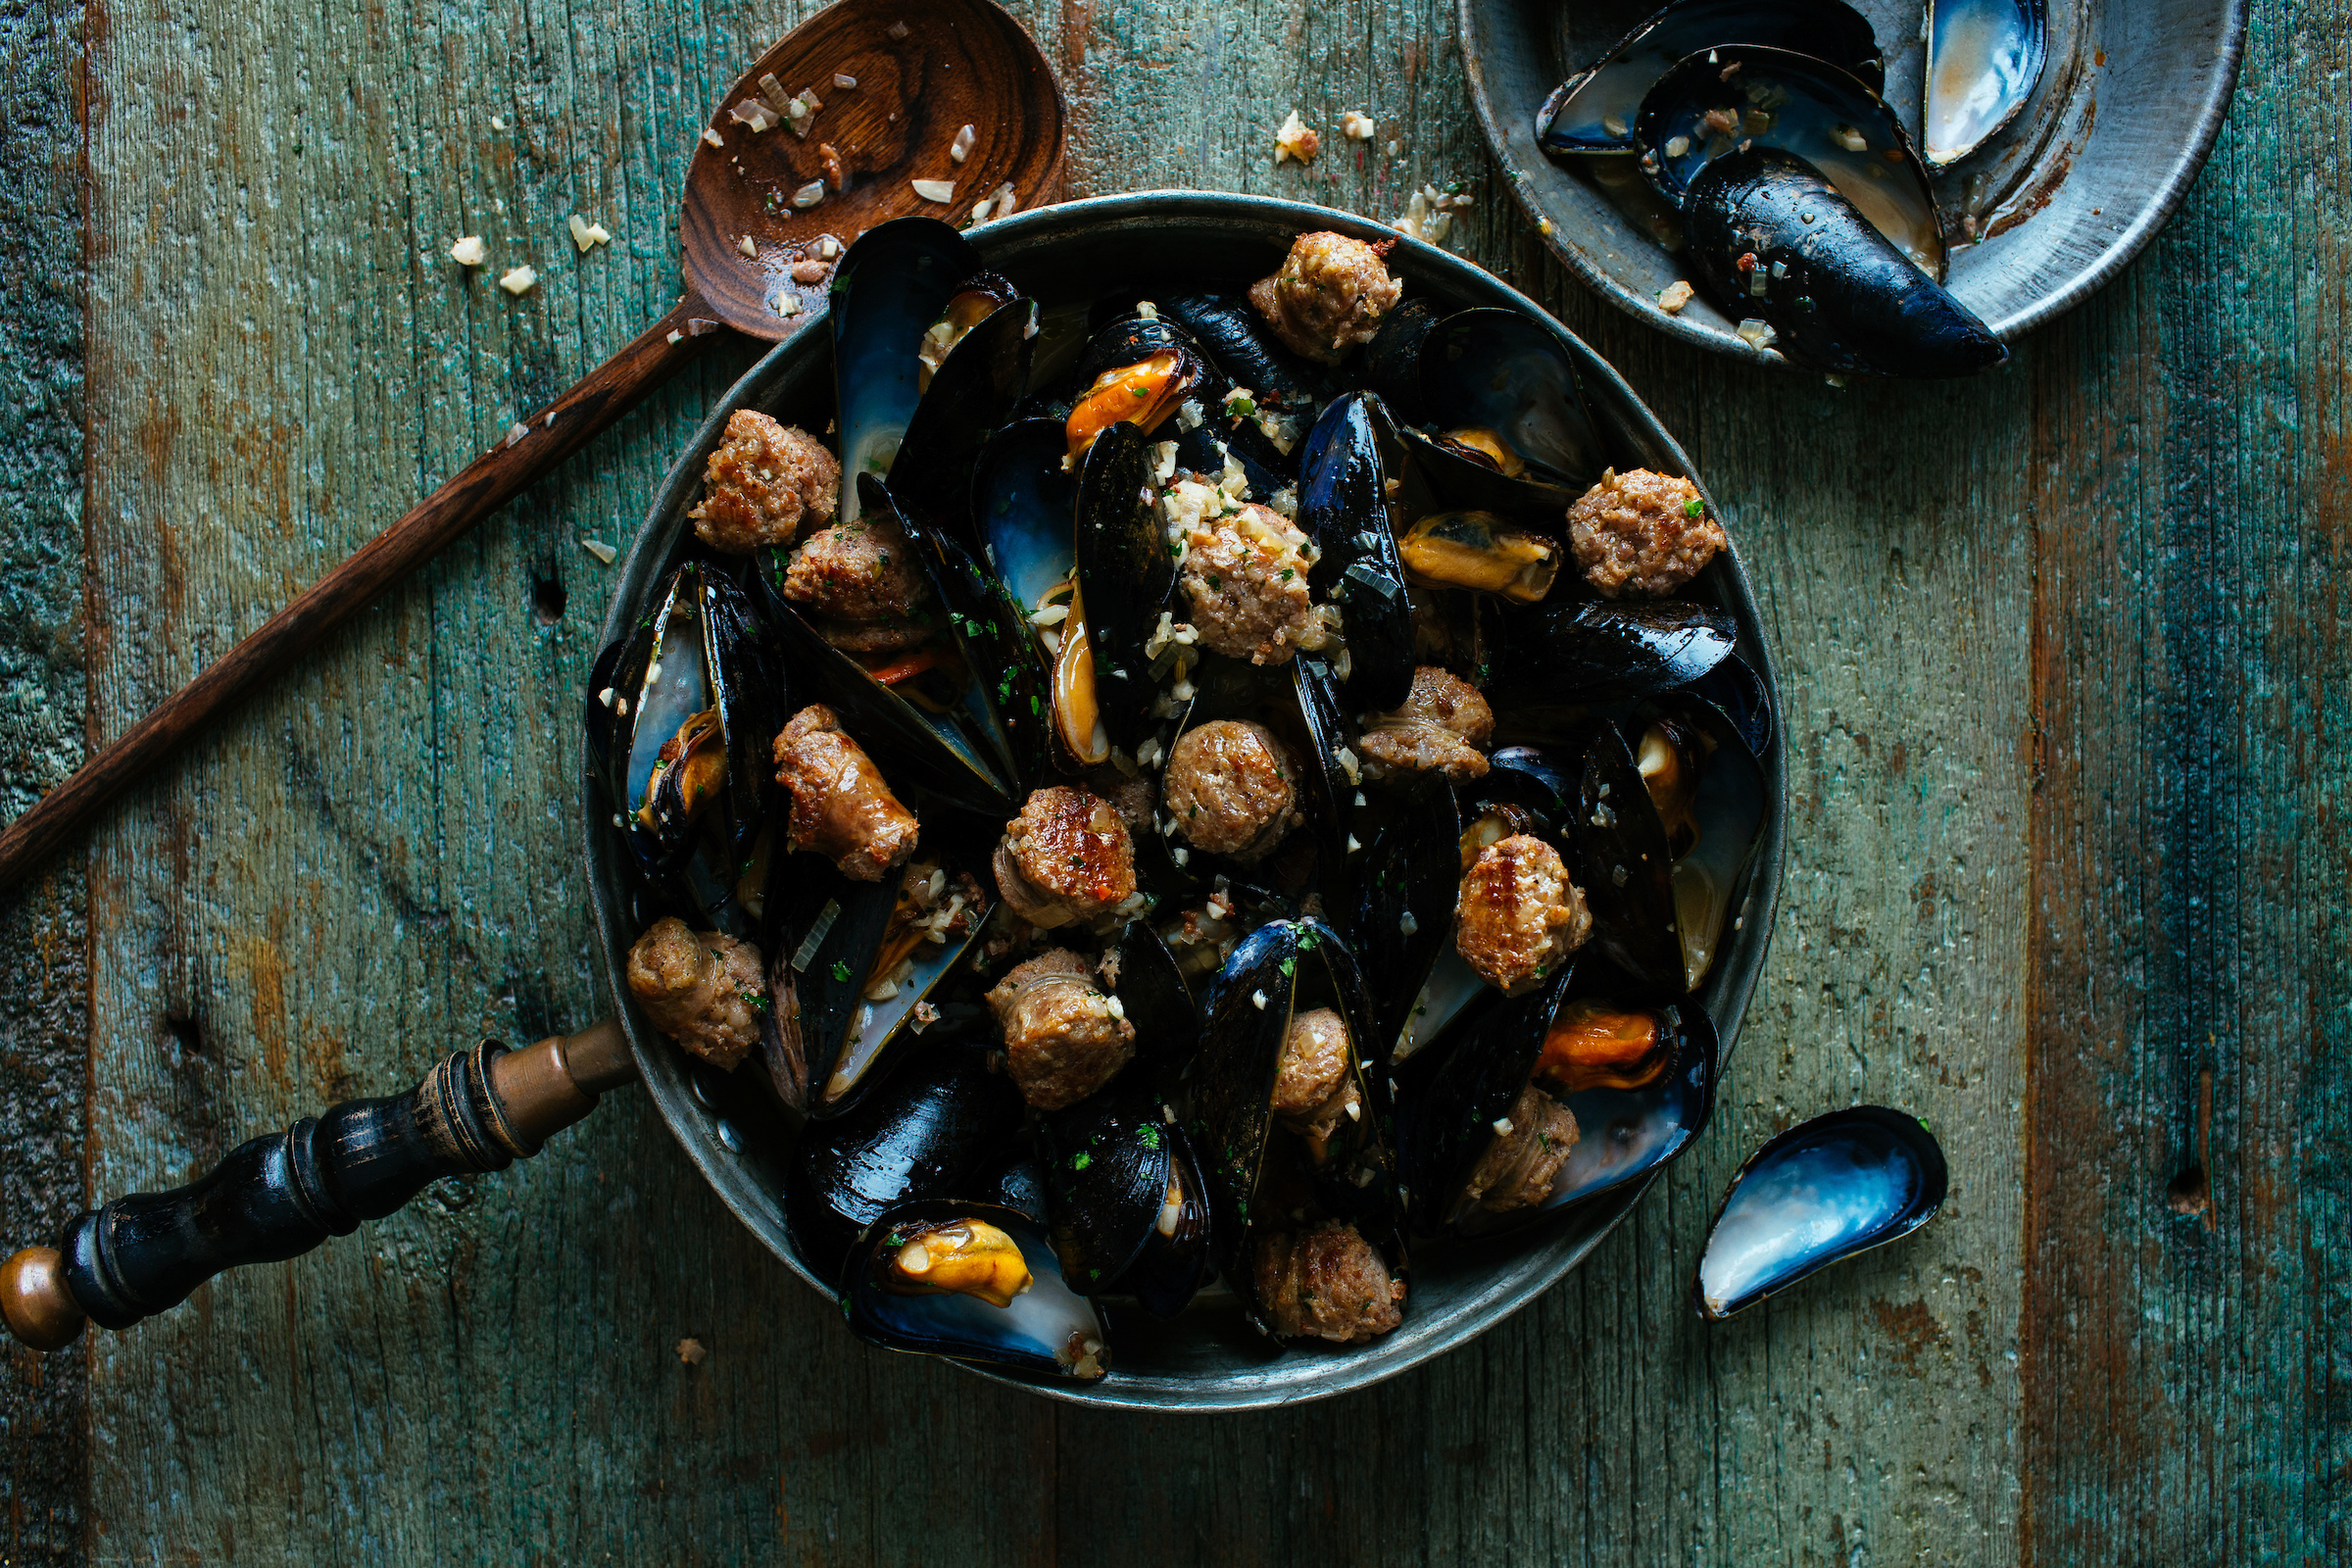 Mussels with Hot Italian -9153.jpg